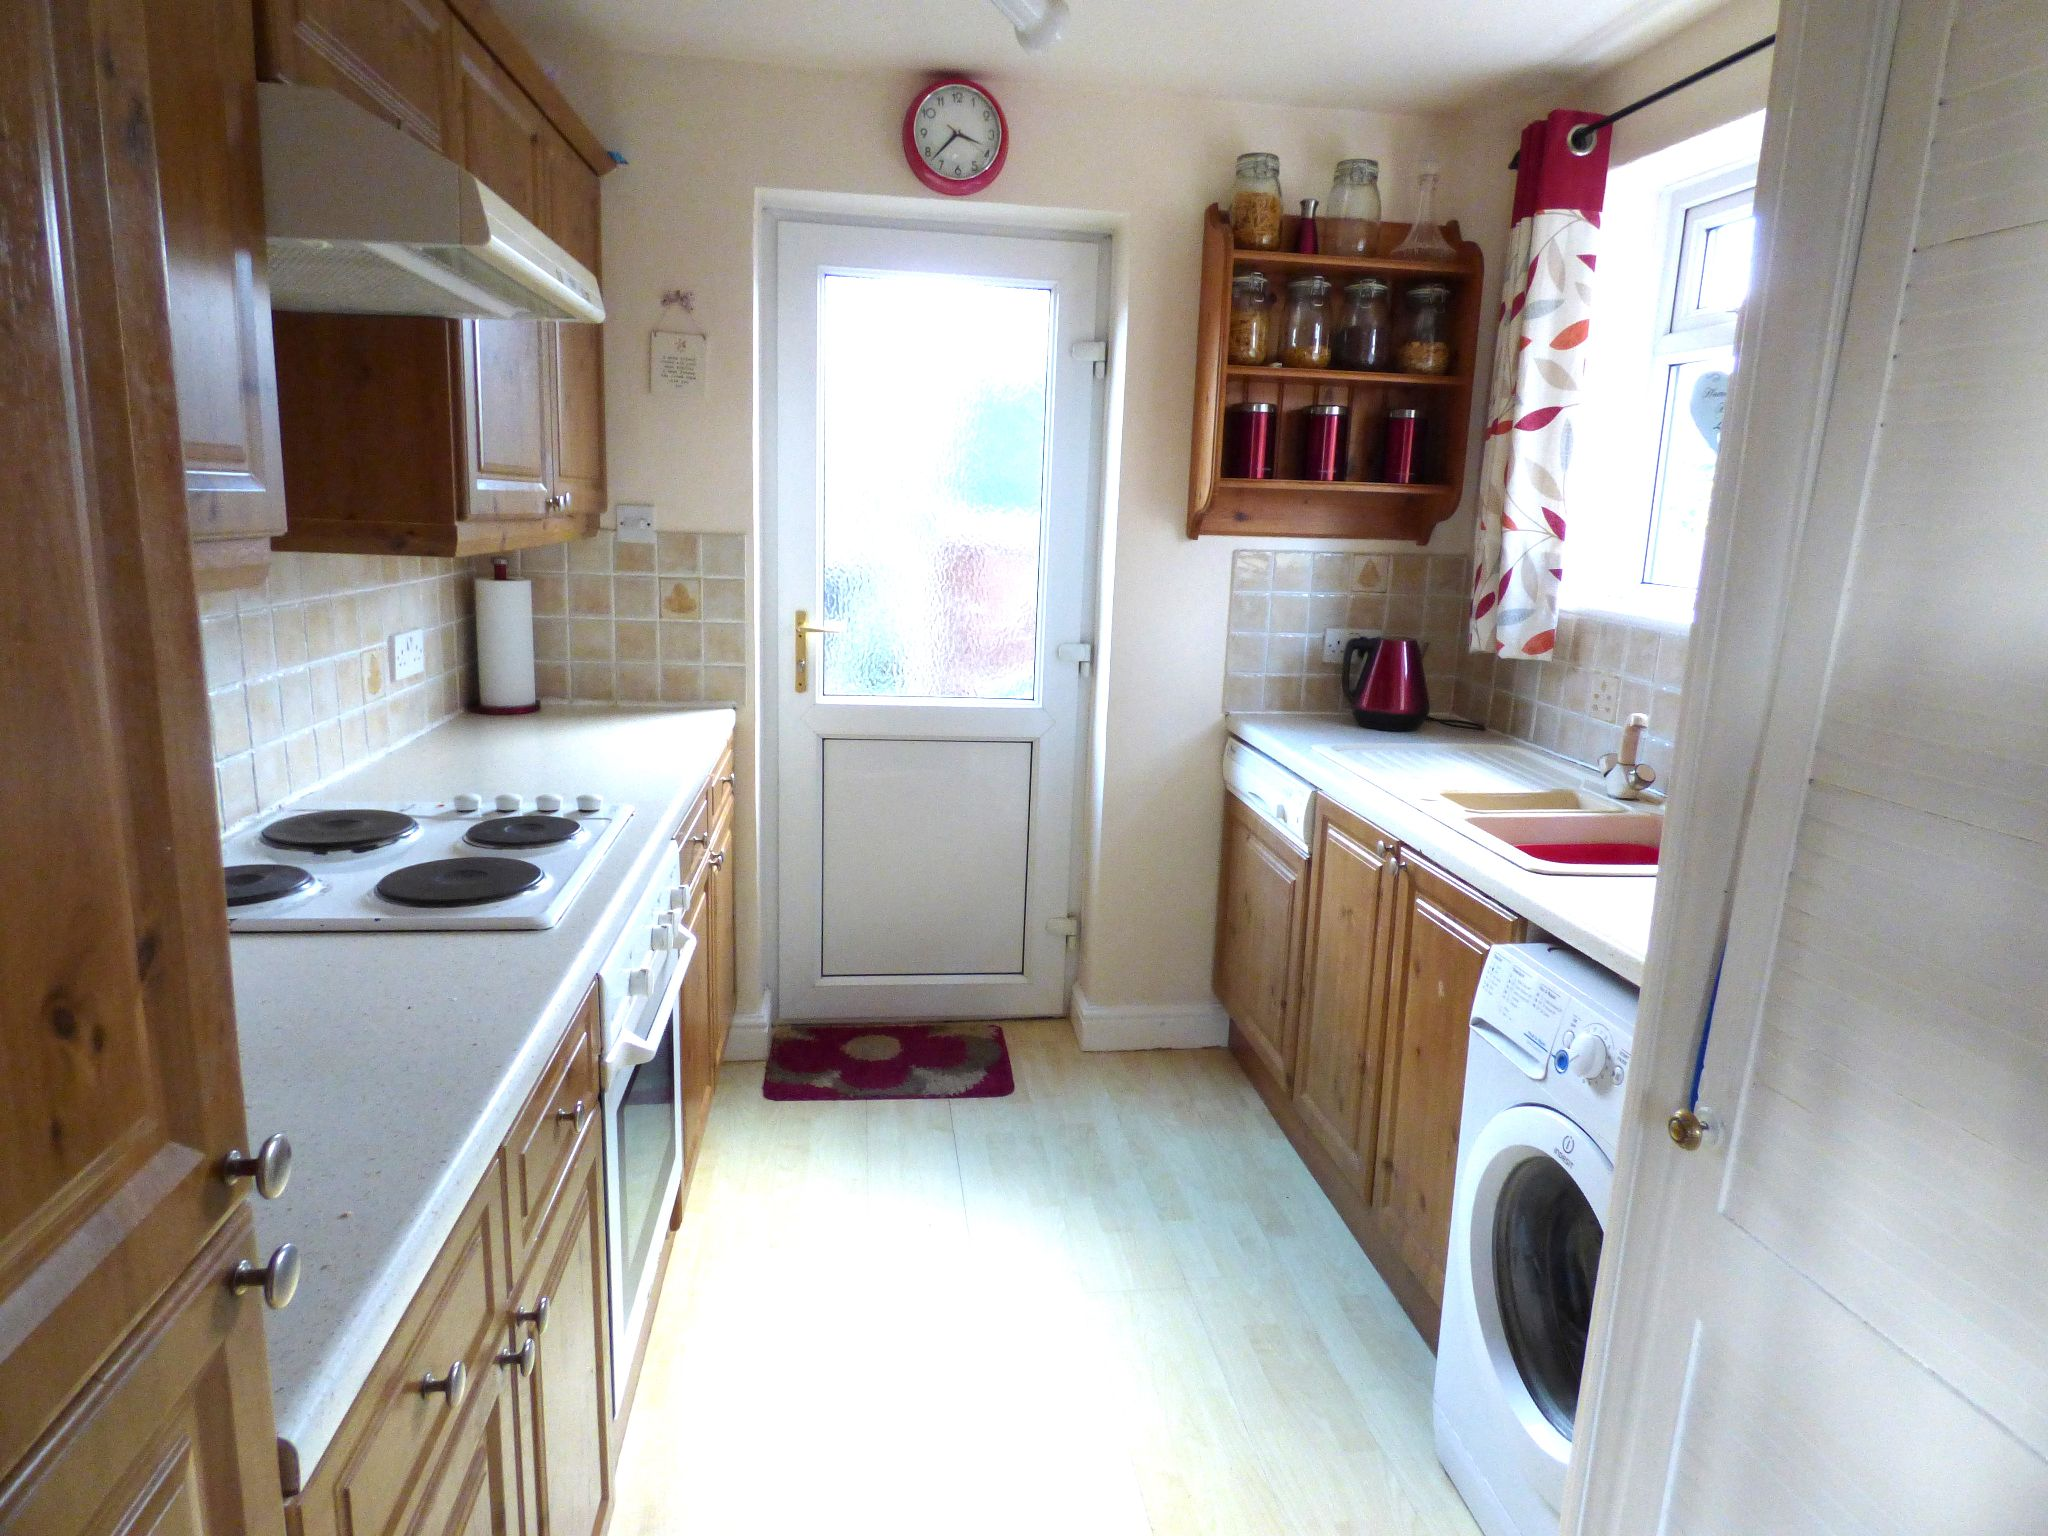 3 Bedroom Semi-detached House For Sale - Photograph 4